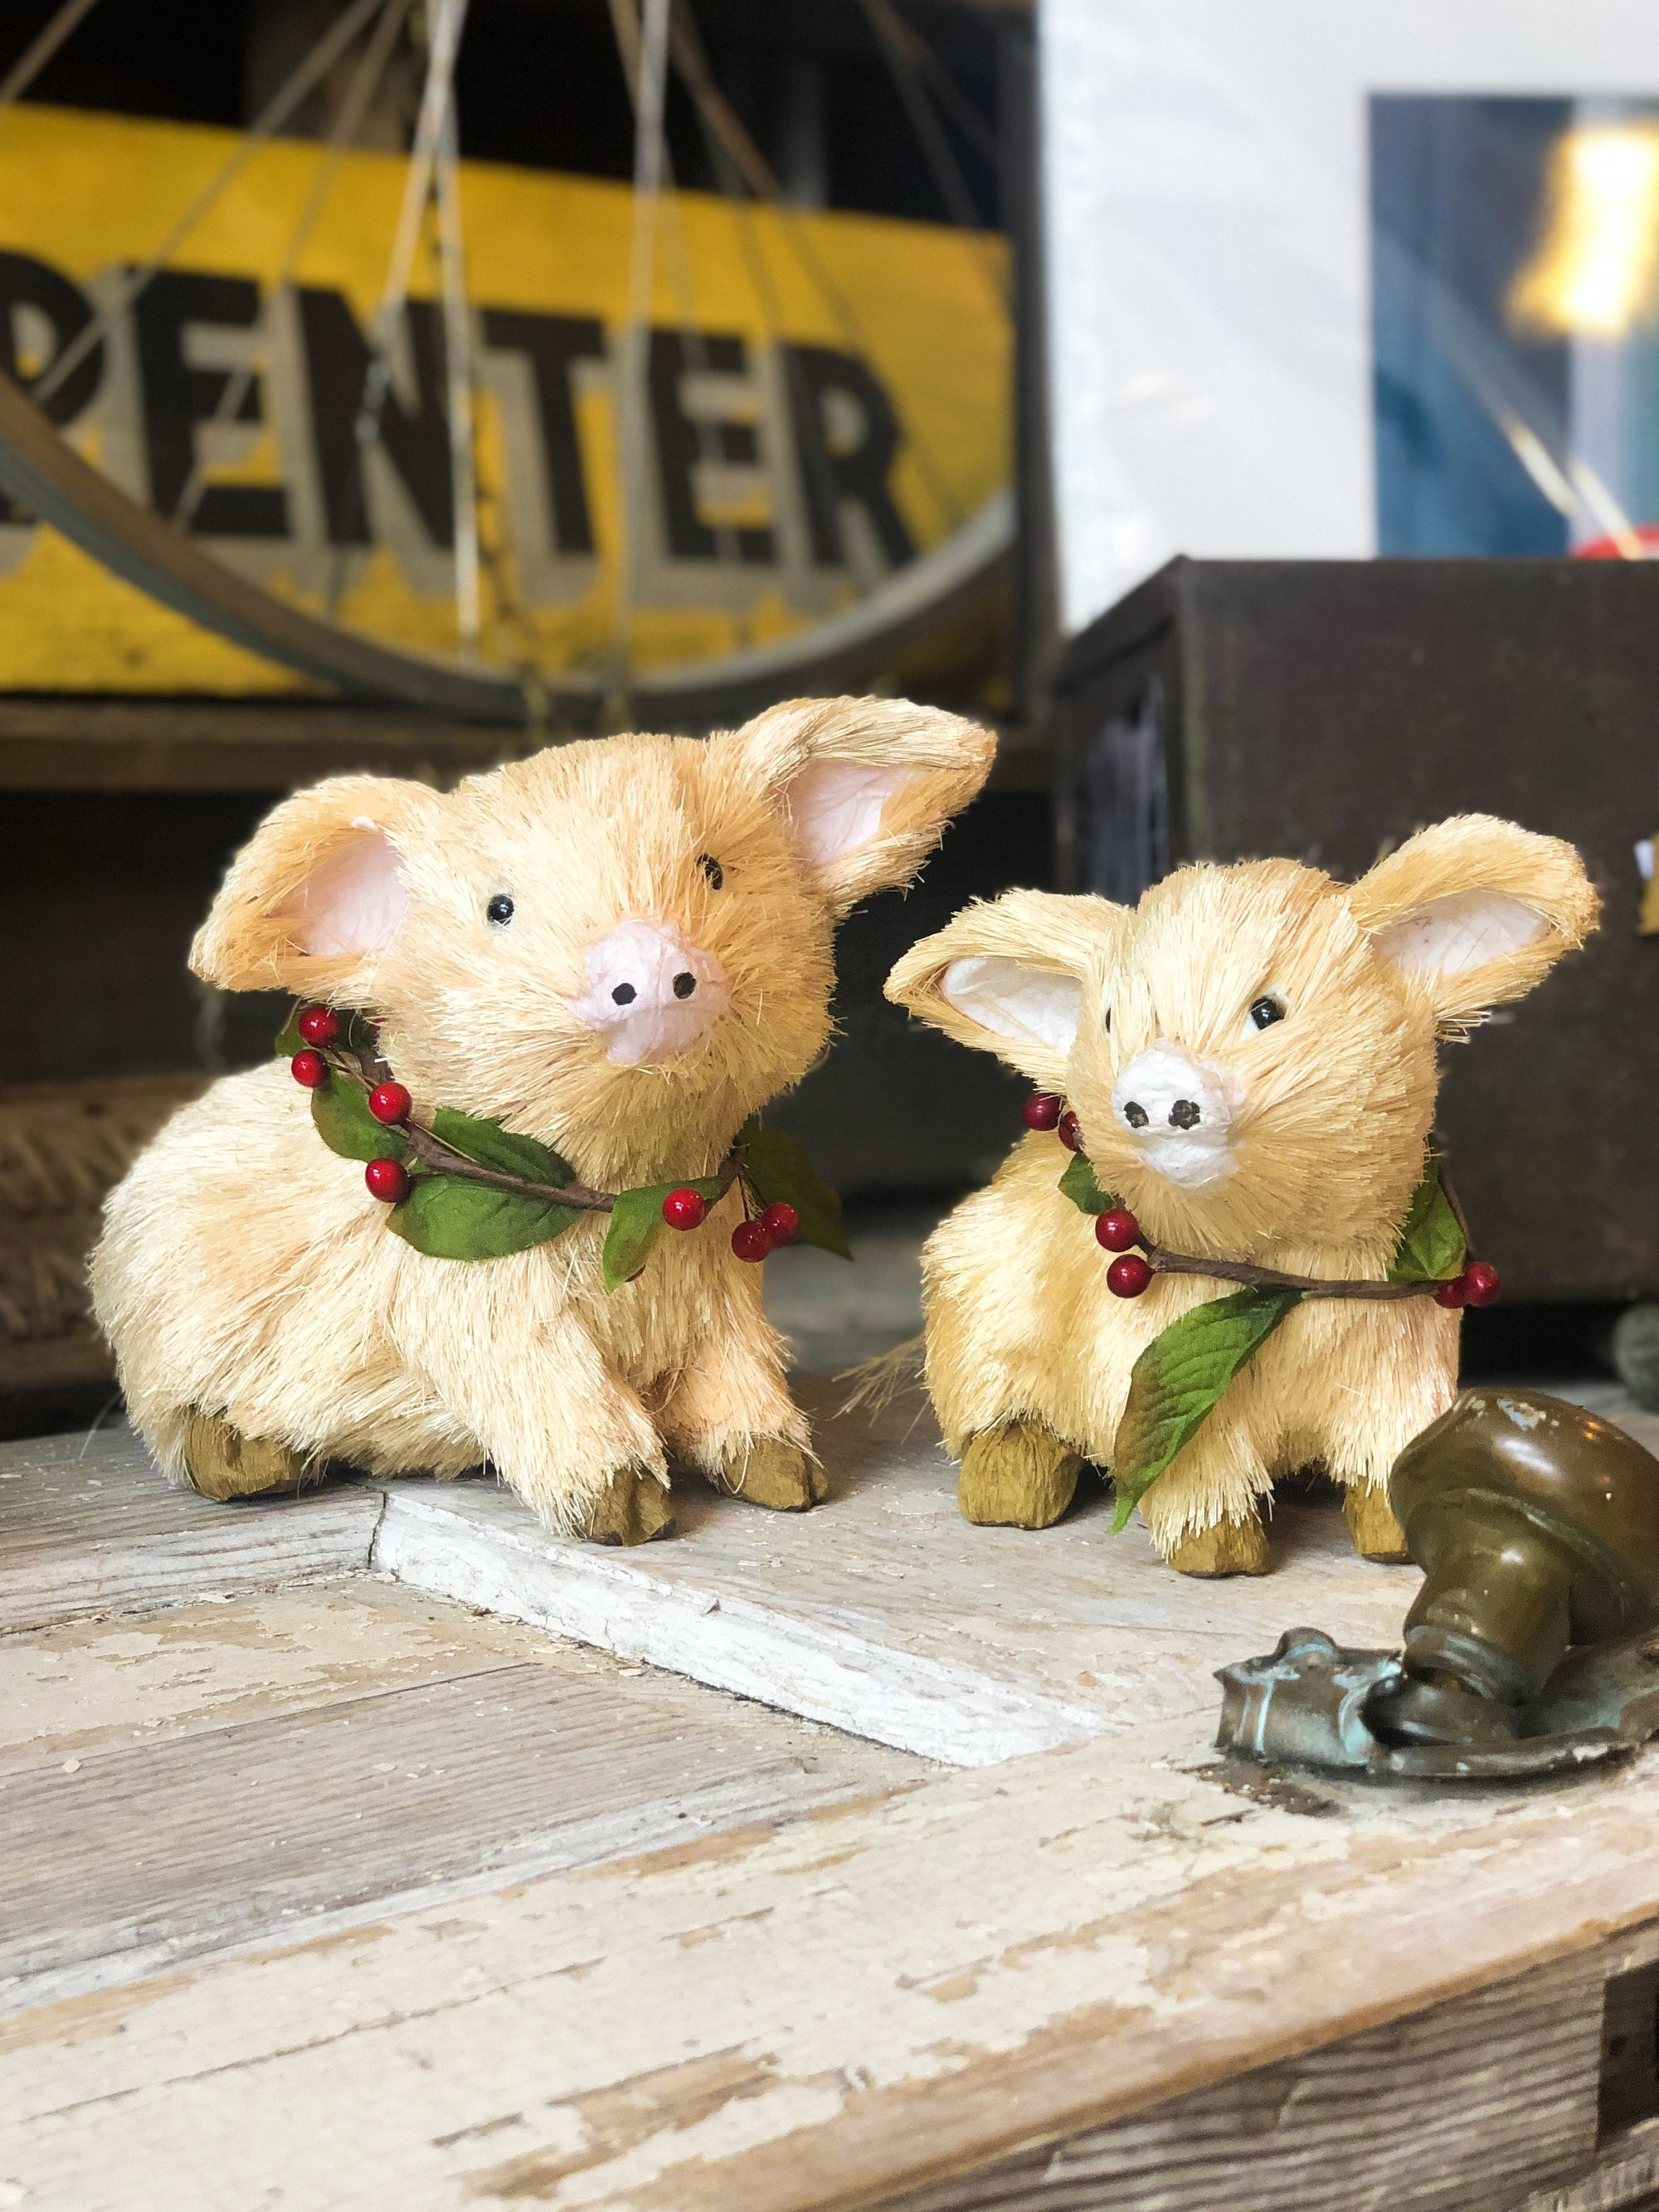 Buy Christmas Decorative Pigs - Set of 2 from Walking Pants Curiosities, the Most un-General Gift Store in Downtown Memphis, Tennessee!